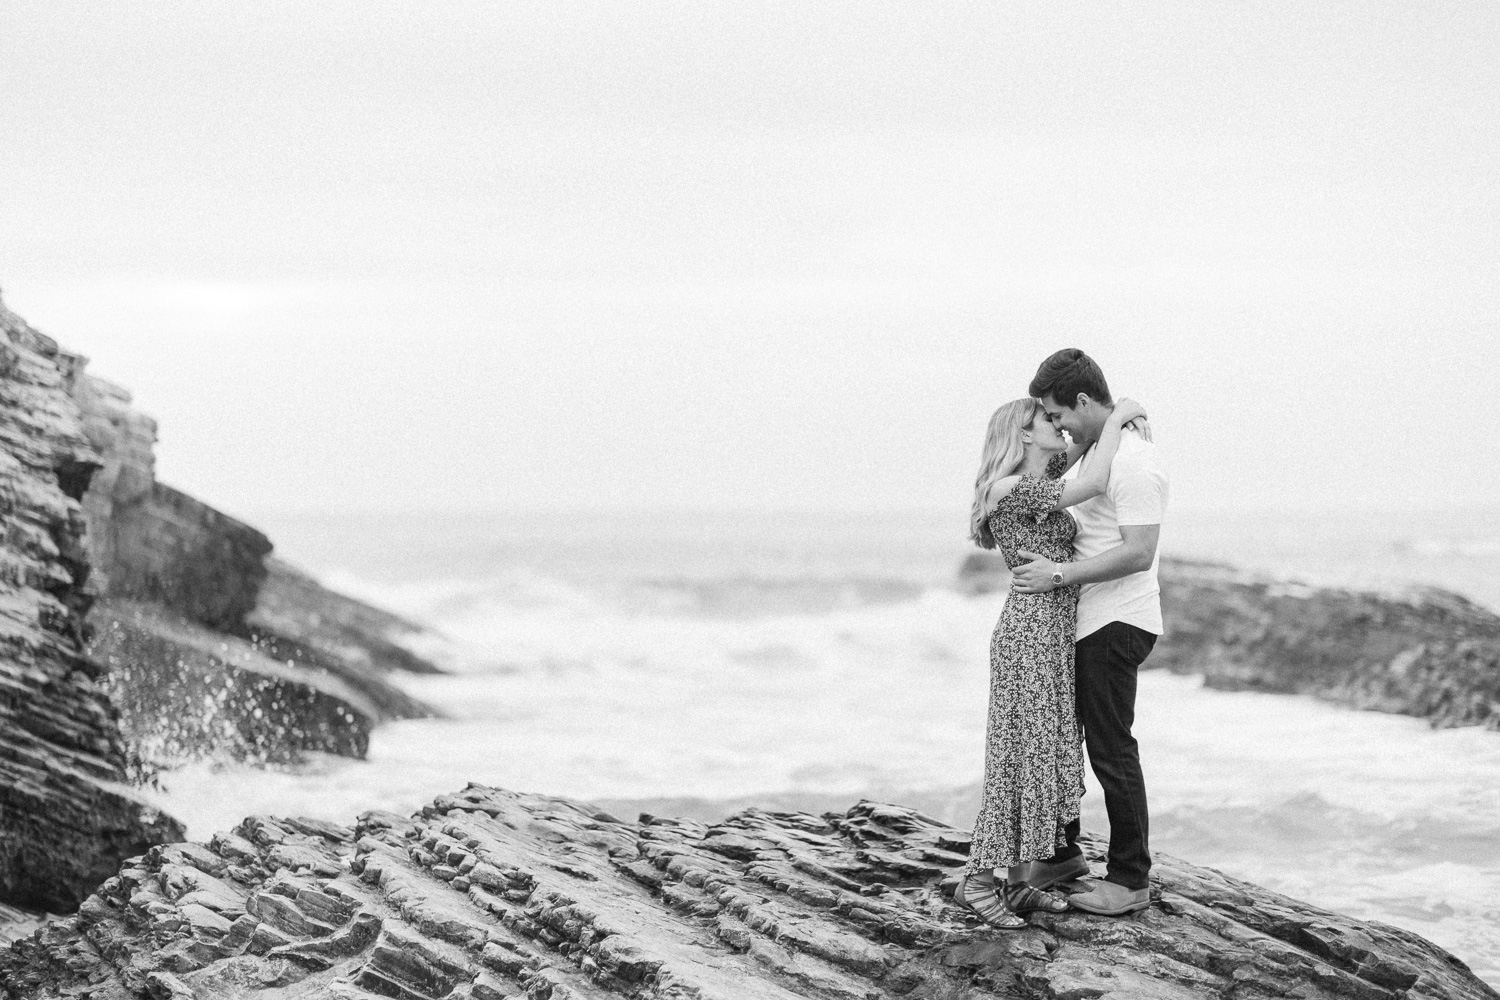 Ashley-Rae-Studio-San-Luis-Obispo-Engagement-Session-Santa-Barbara-Wedding-Photographer-152.jpg